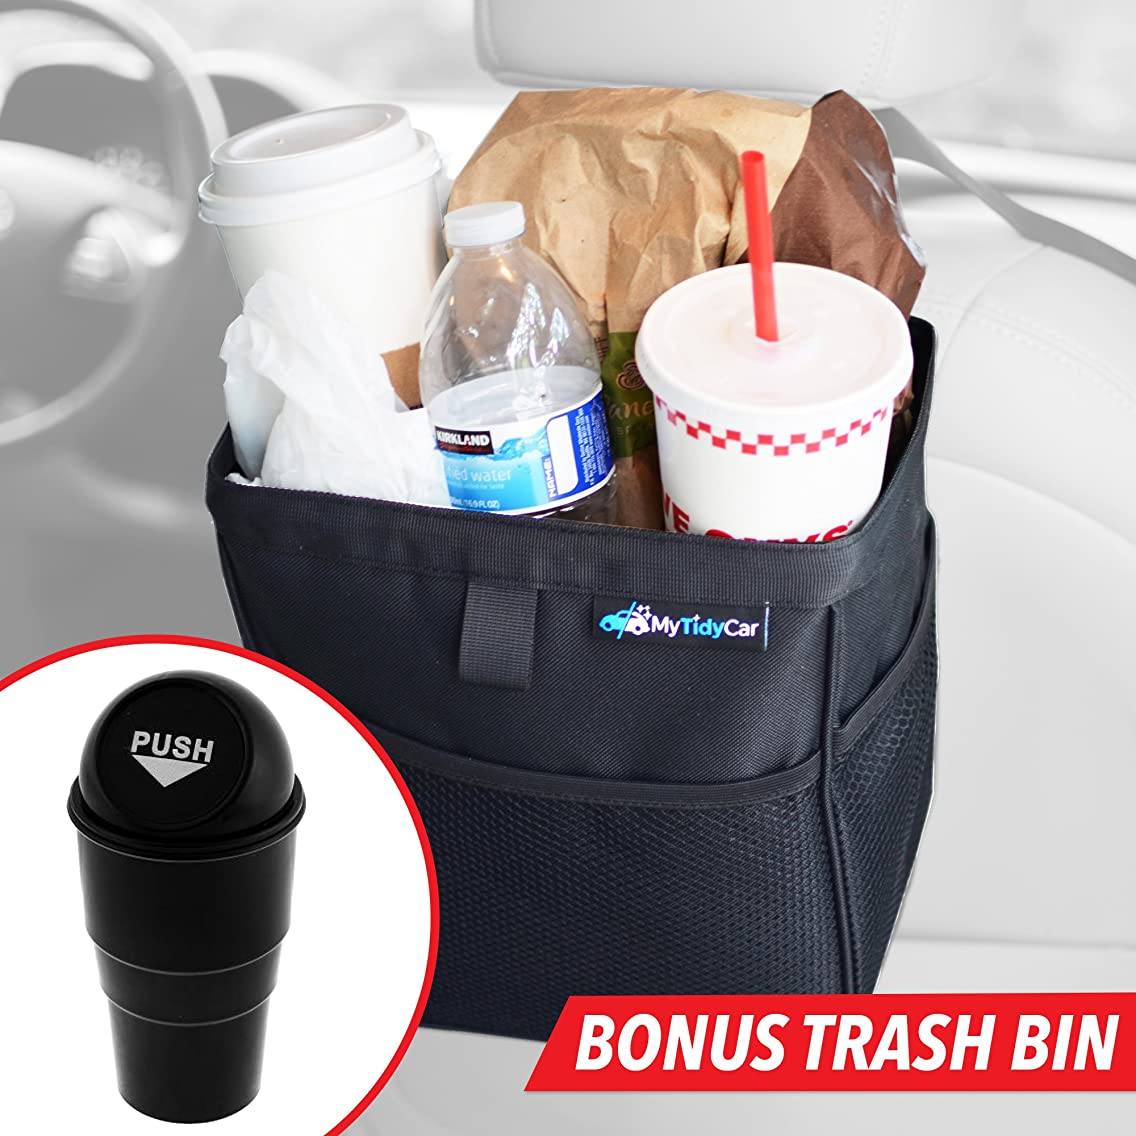 MyTidyCar Hanging Car Trash Can & Cooler - Premium, 3 Pockets, Leakproof, Hanging Car Garbage Bag for Vehicles (Bundle)